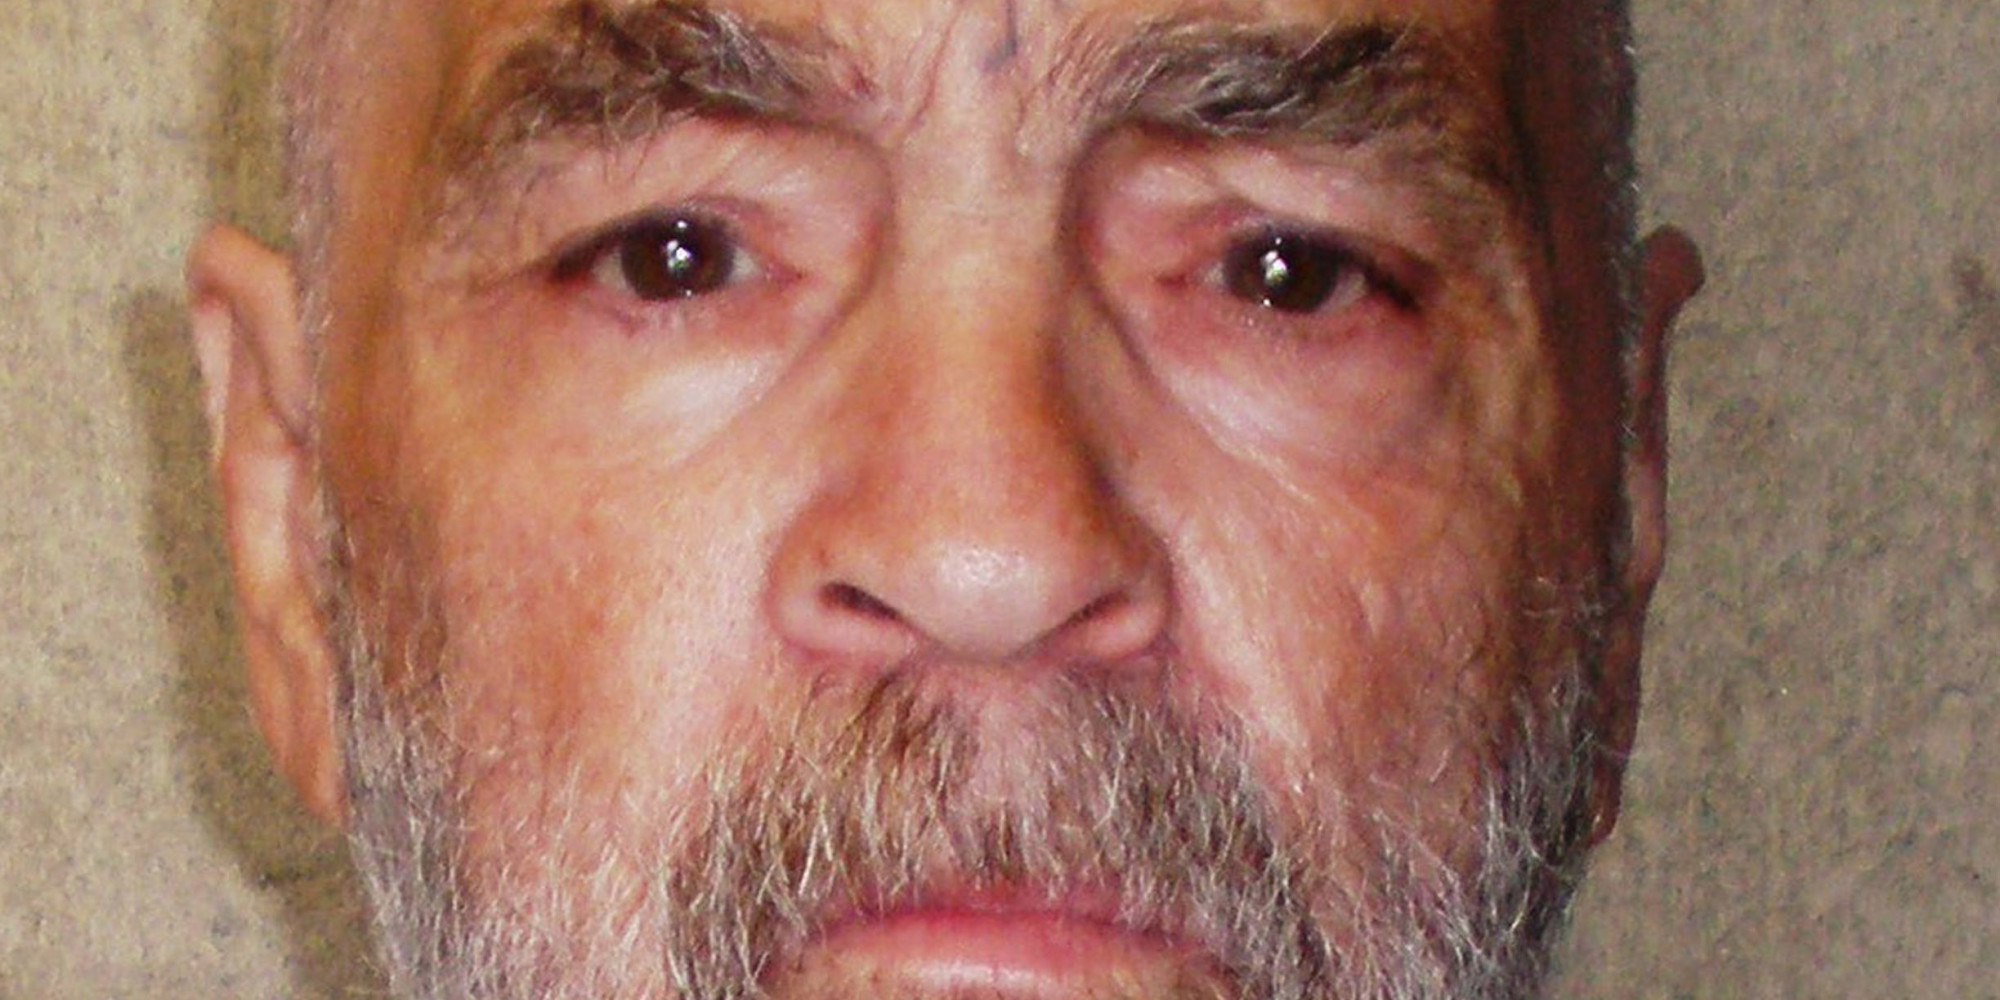 Mass murderer charles manson can get legally married but a lot of gay